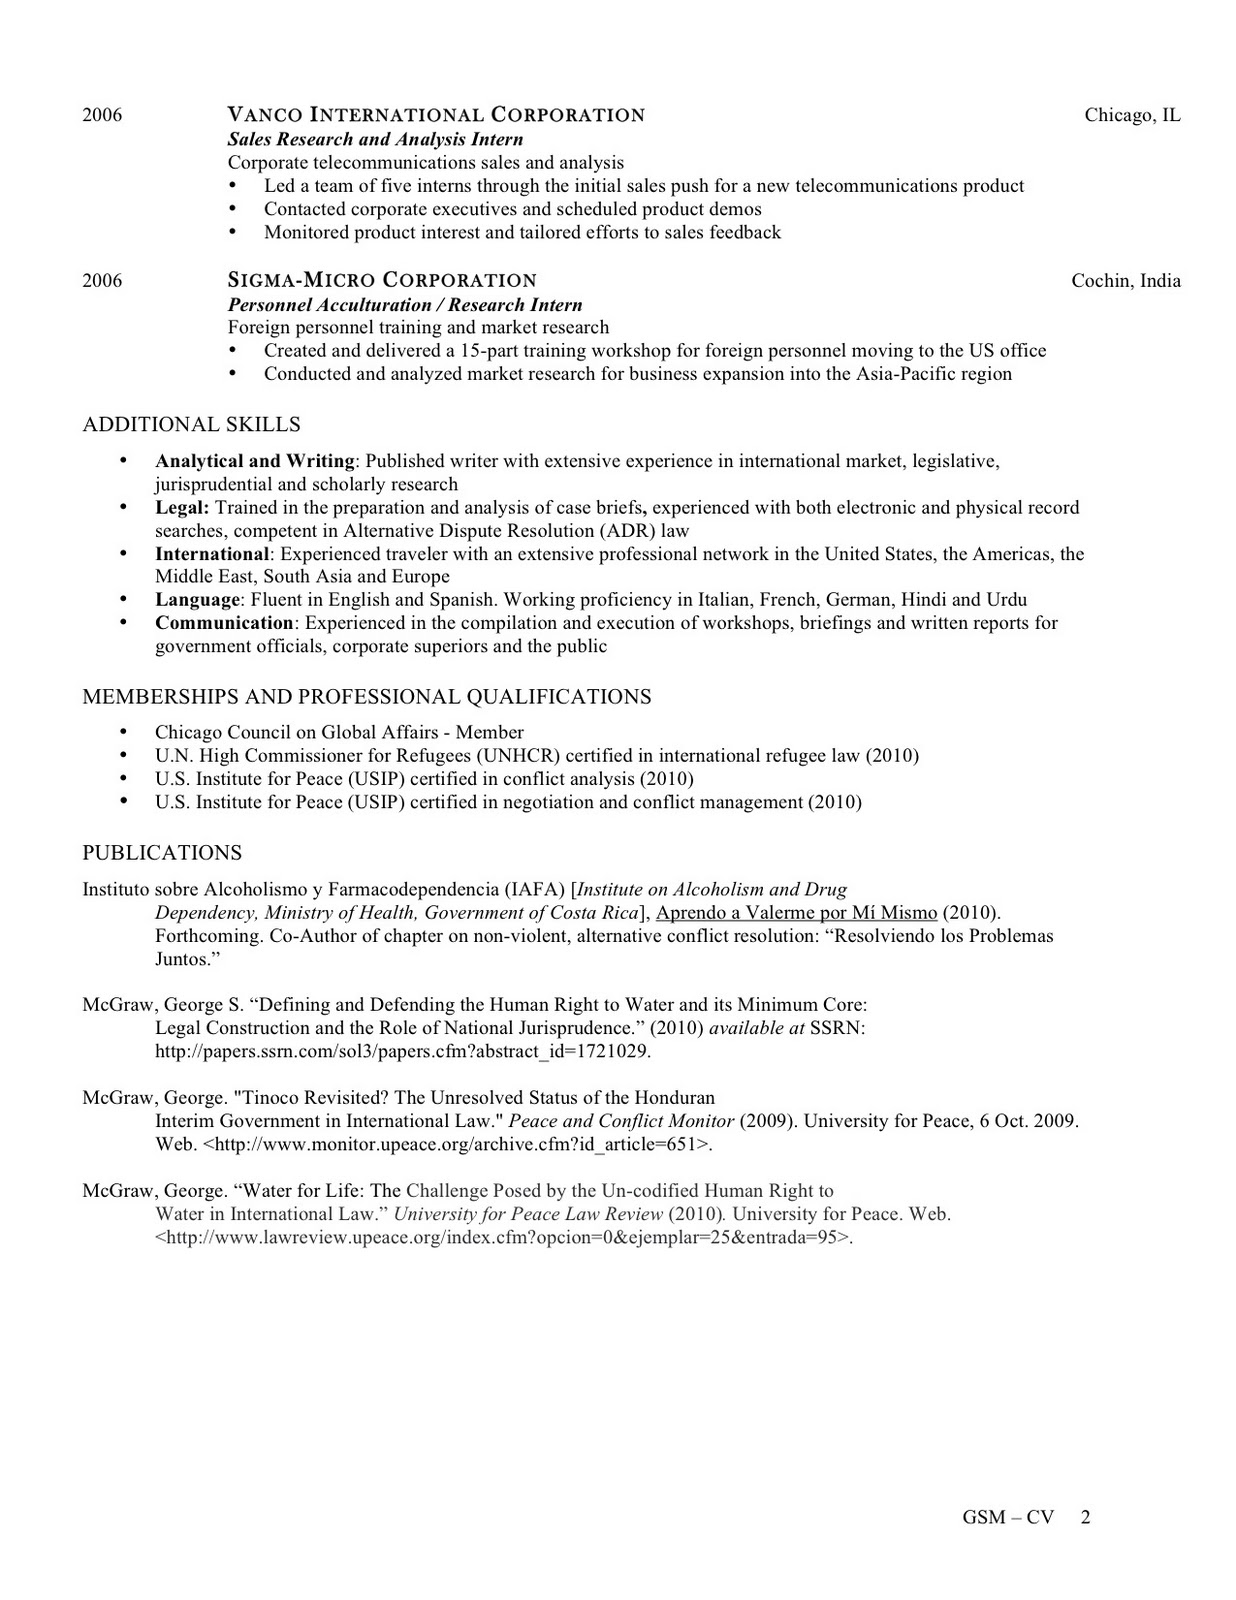 resume and publications  cv and contact information